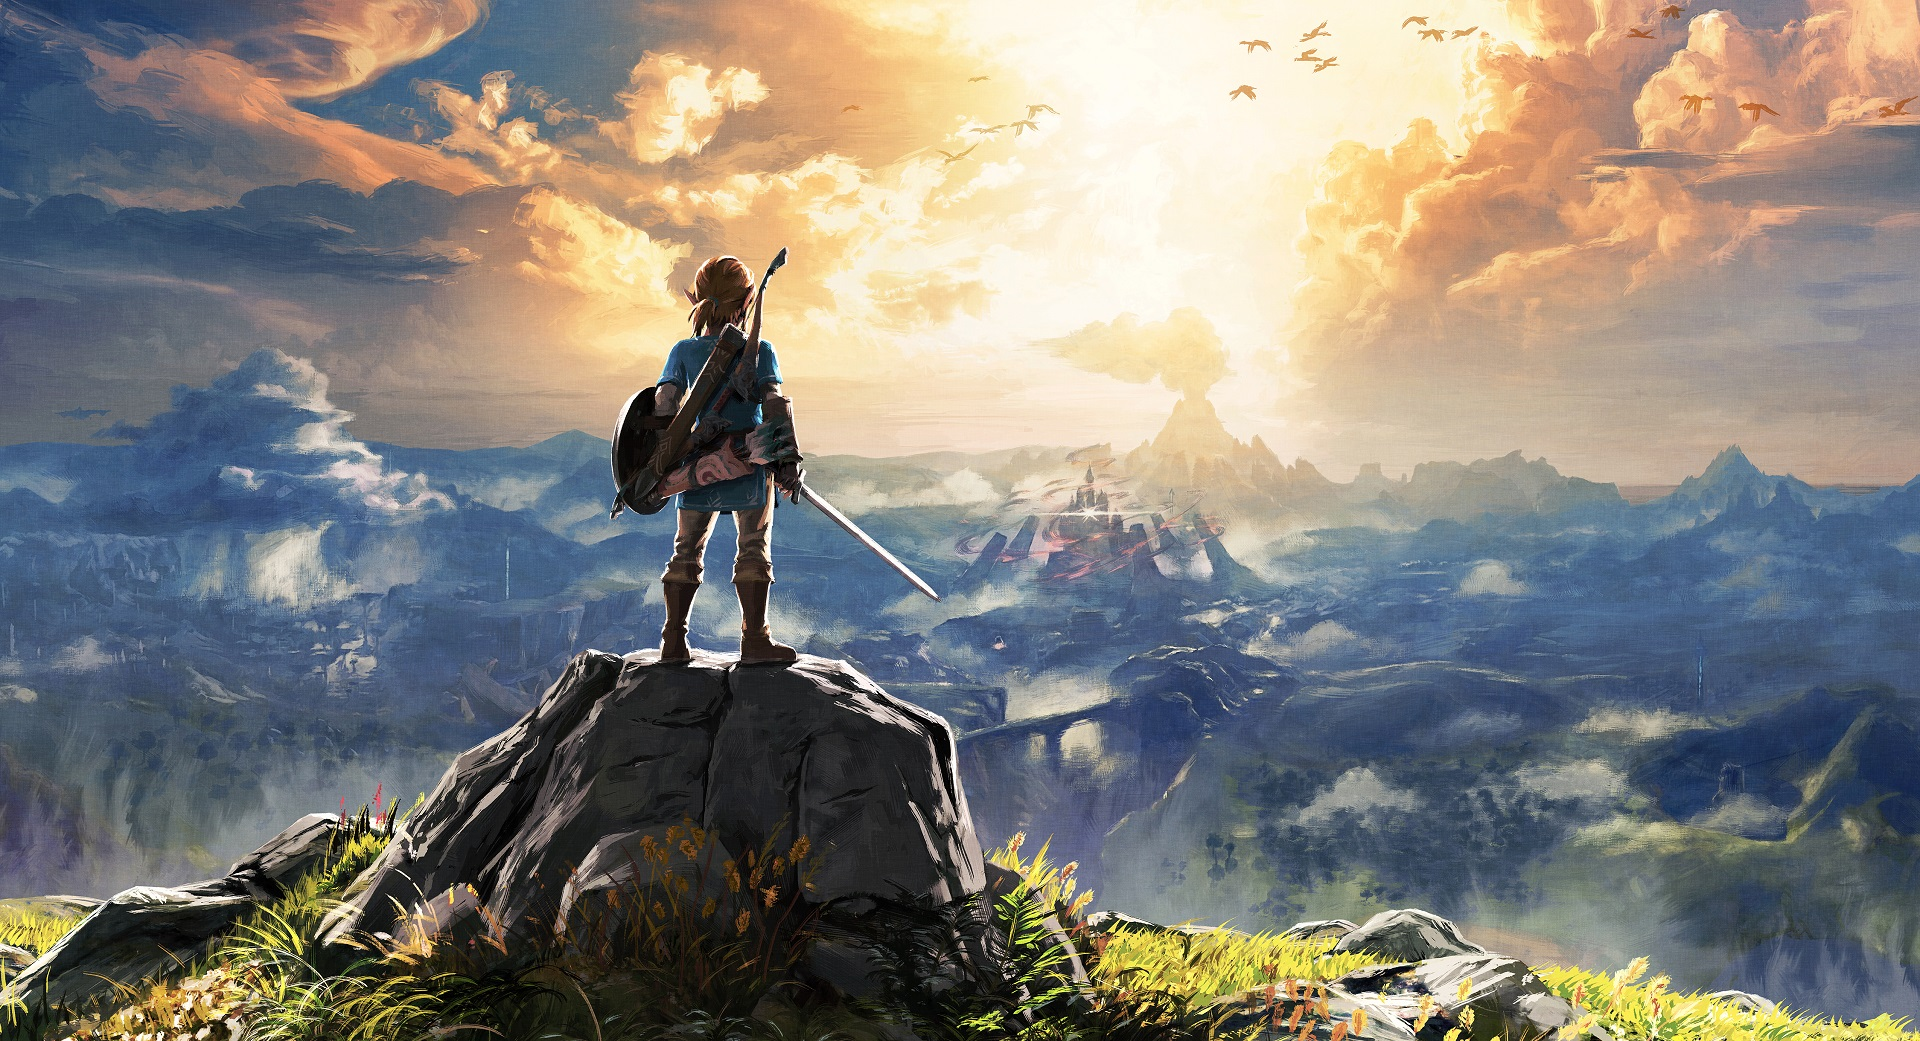 Zelda Breath Of The Wild Cemu 60FPS Patch Now Available To The Public